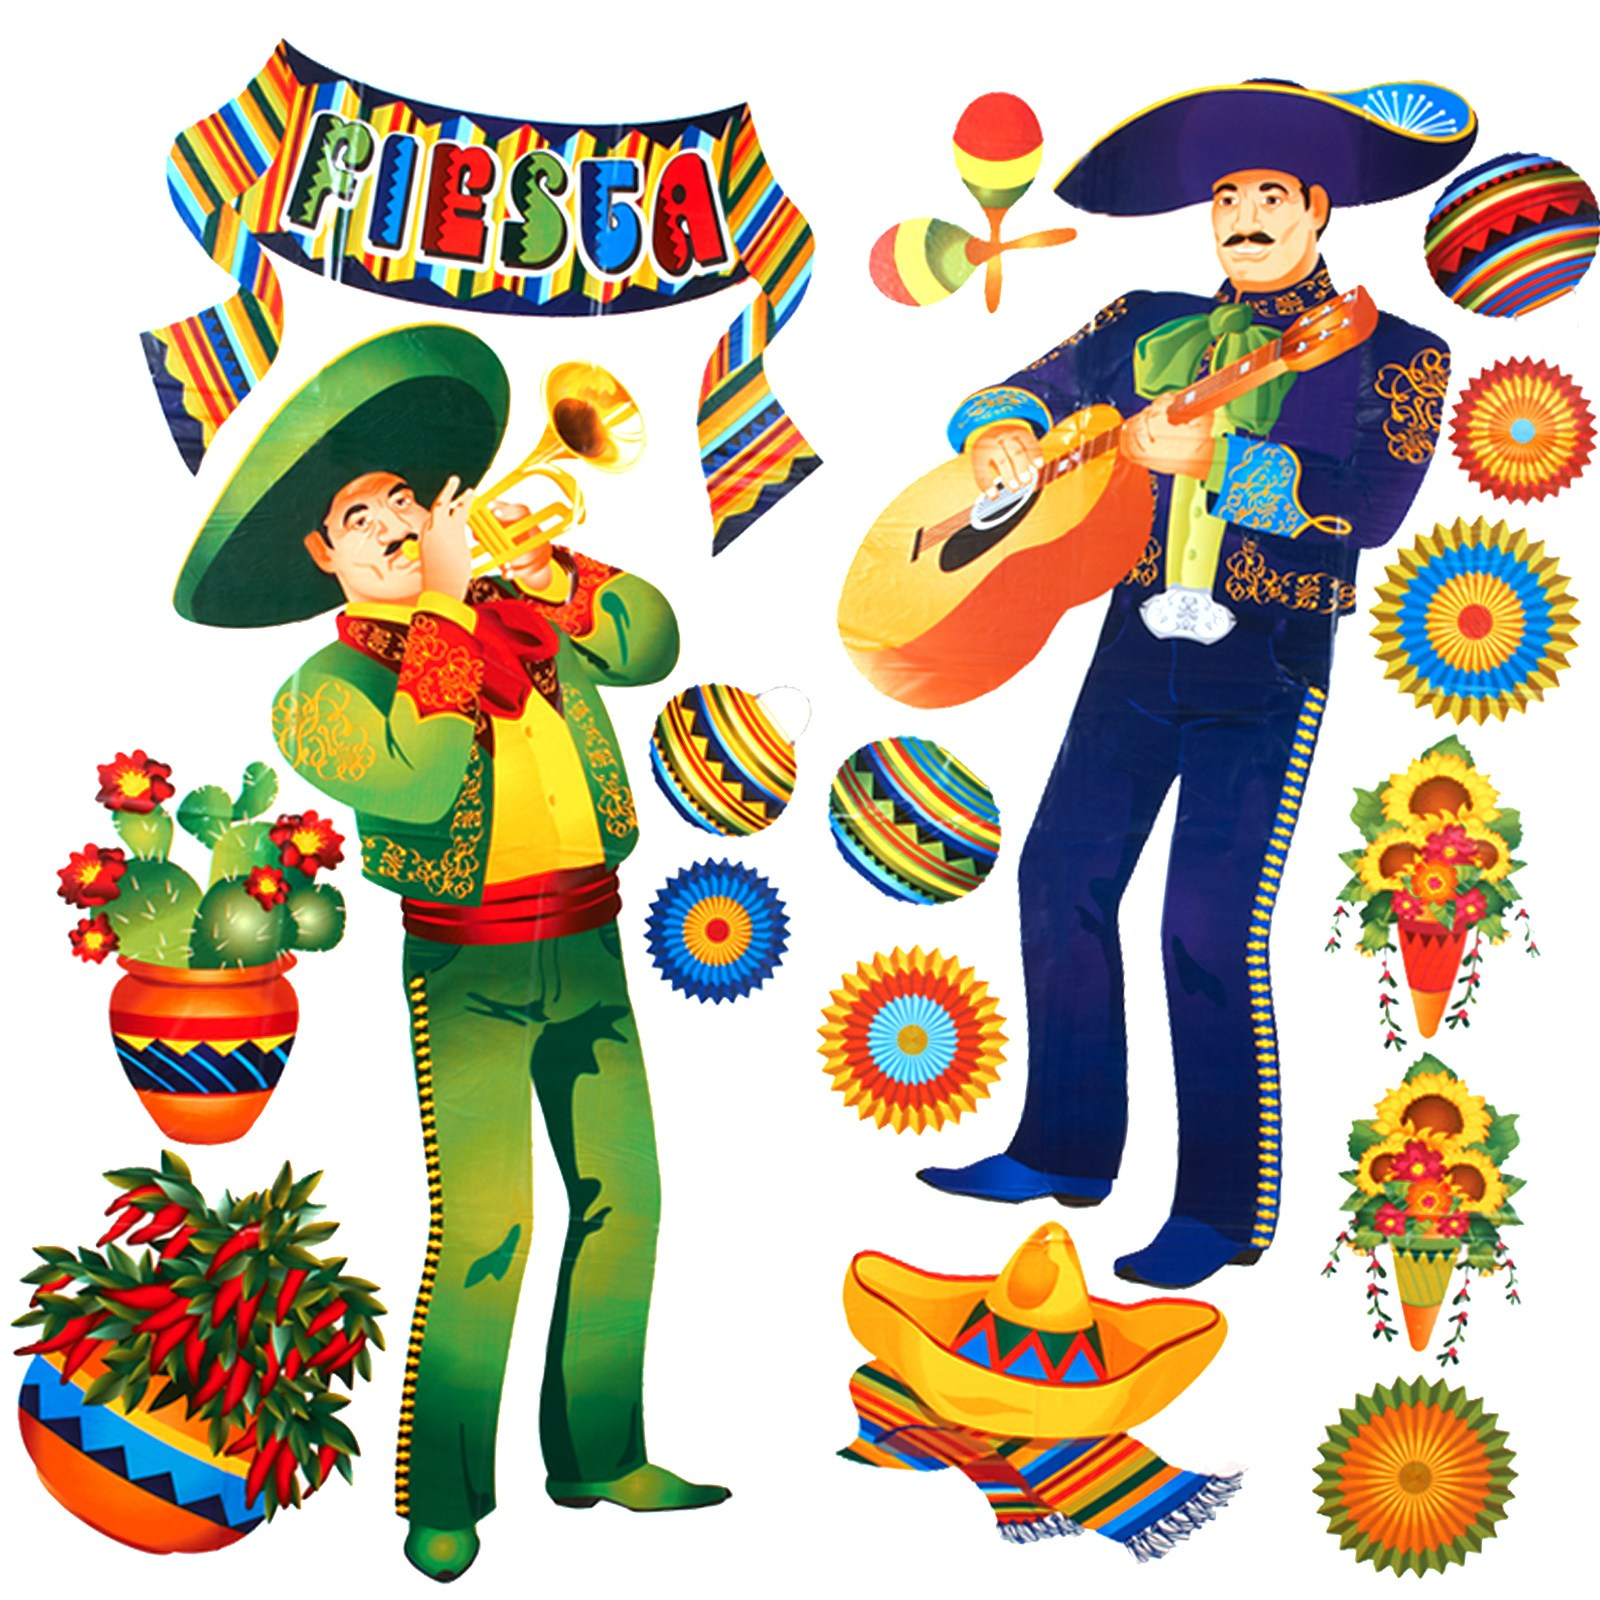 Mariachis clipart jpg freeuse library Mariachis clipart 9 » Clipart Portal jpg freeuse library